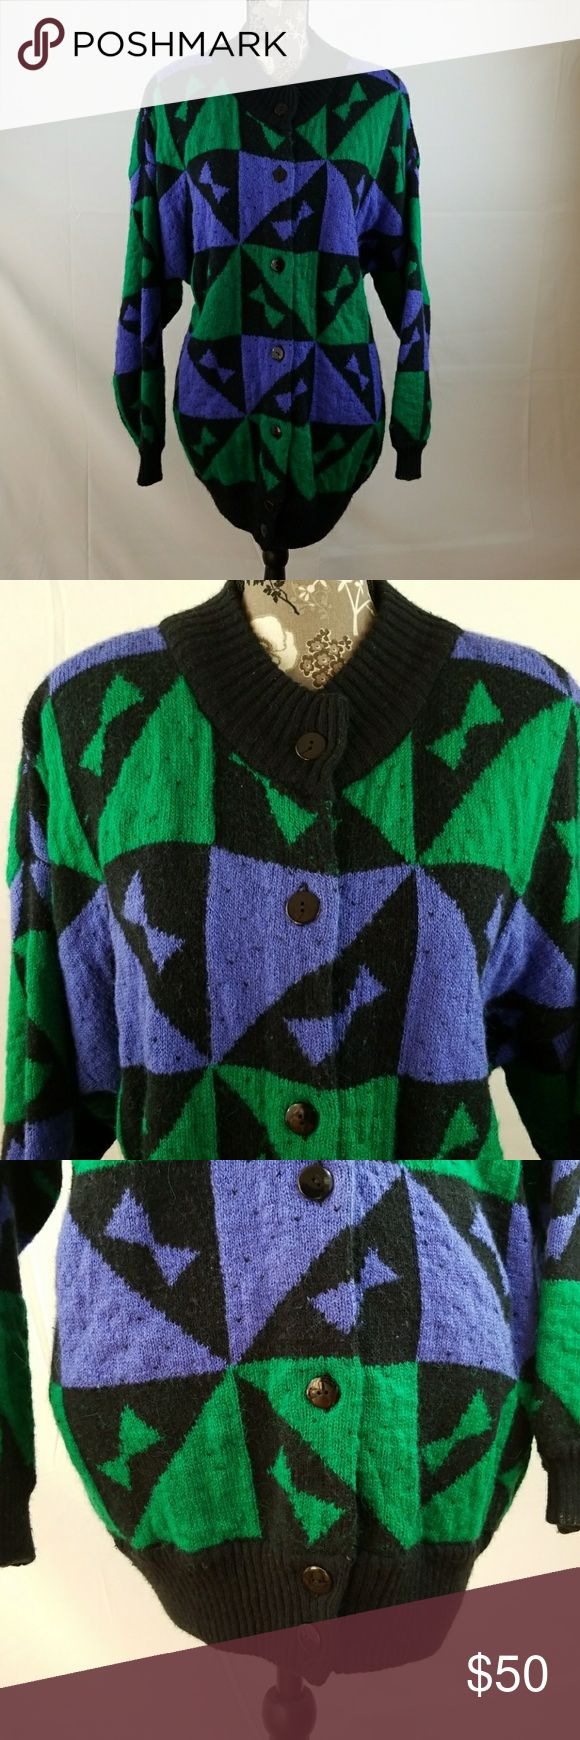 Vintage LILLY  of CALIFORNIA sweater coat LILLY of CALIFORNIA sweater coat from the late 1970's. Perfect condition. Was my mother's. Gorgeous black with purple & green design's. 24 1/2 arm pit to arm pit, sleeve 18 1/4, length 30in. LILLY of CALIFORNIA Sweaters Cardigans